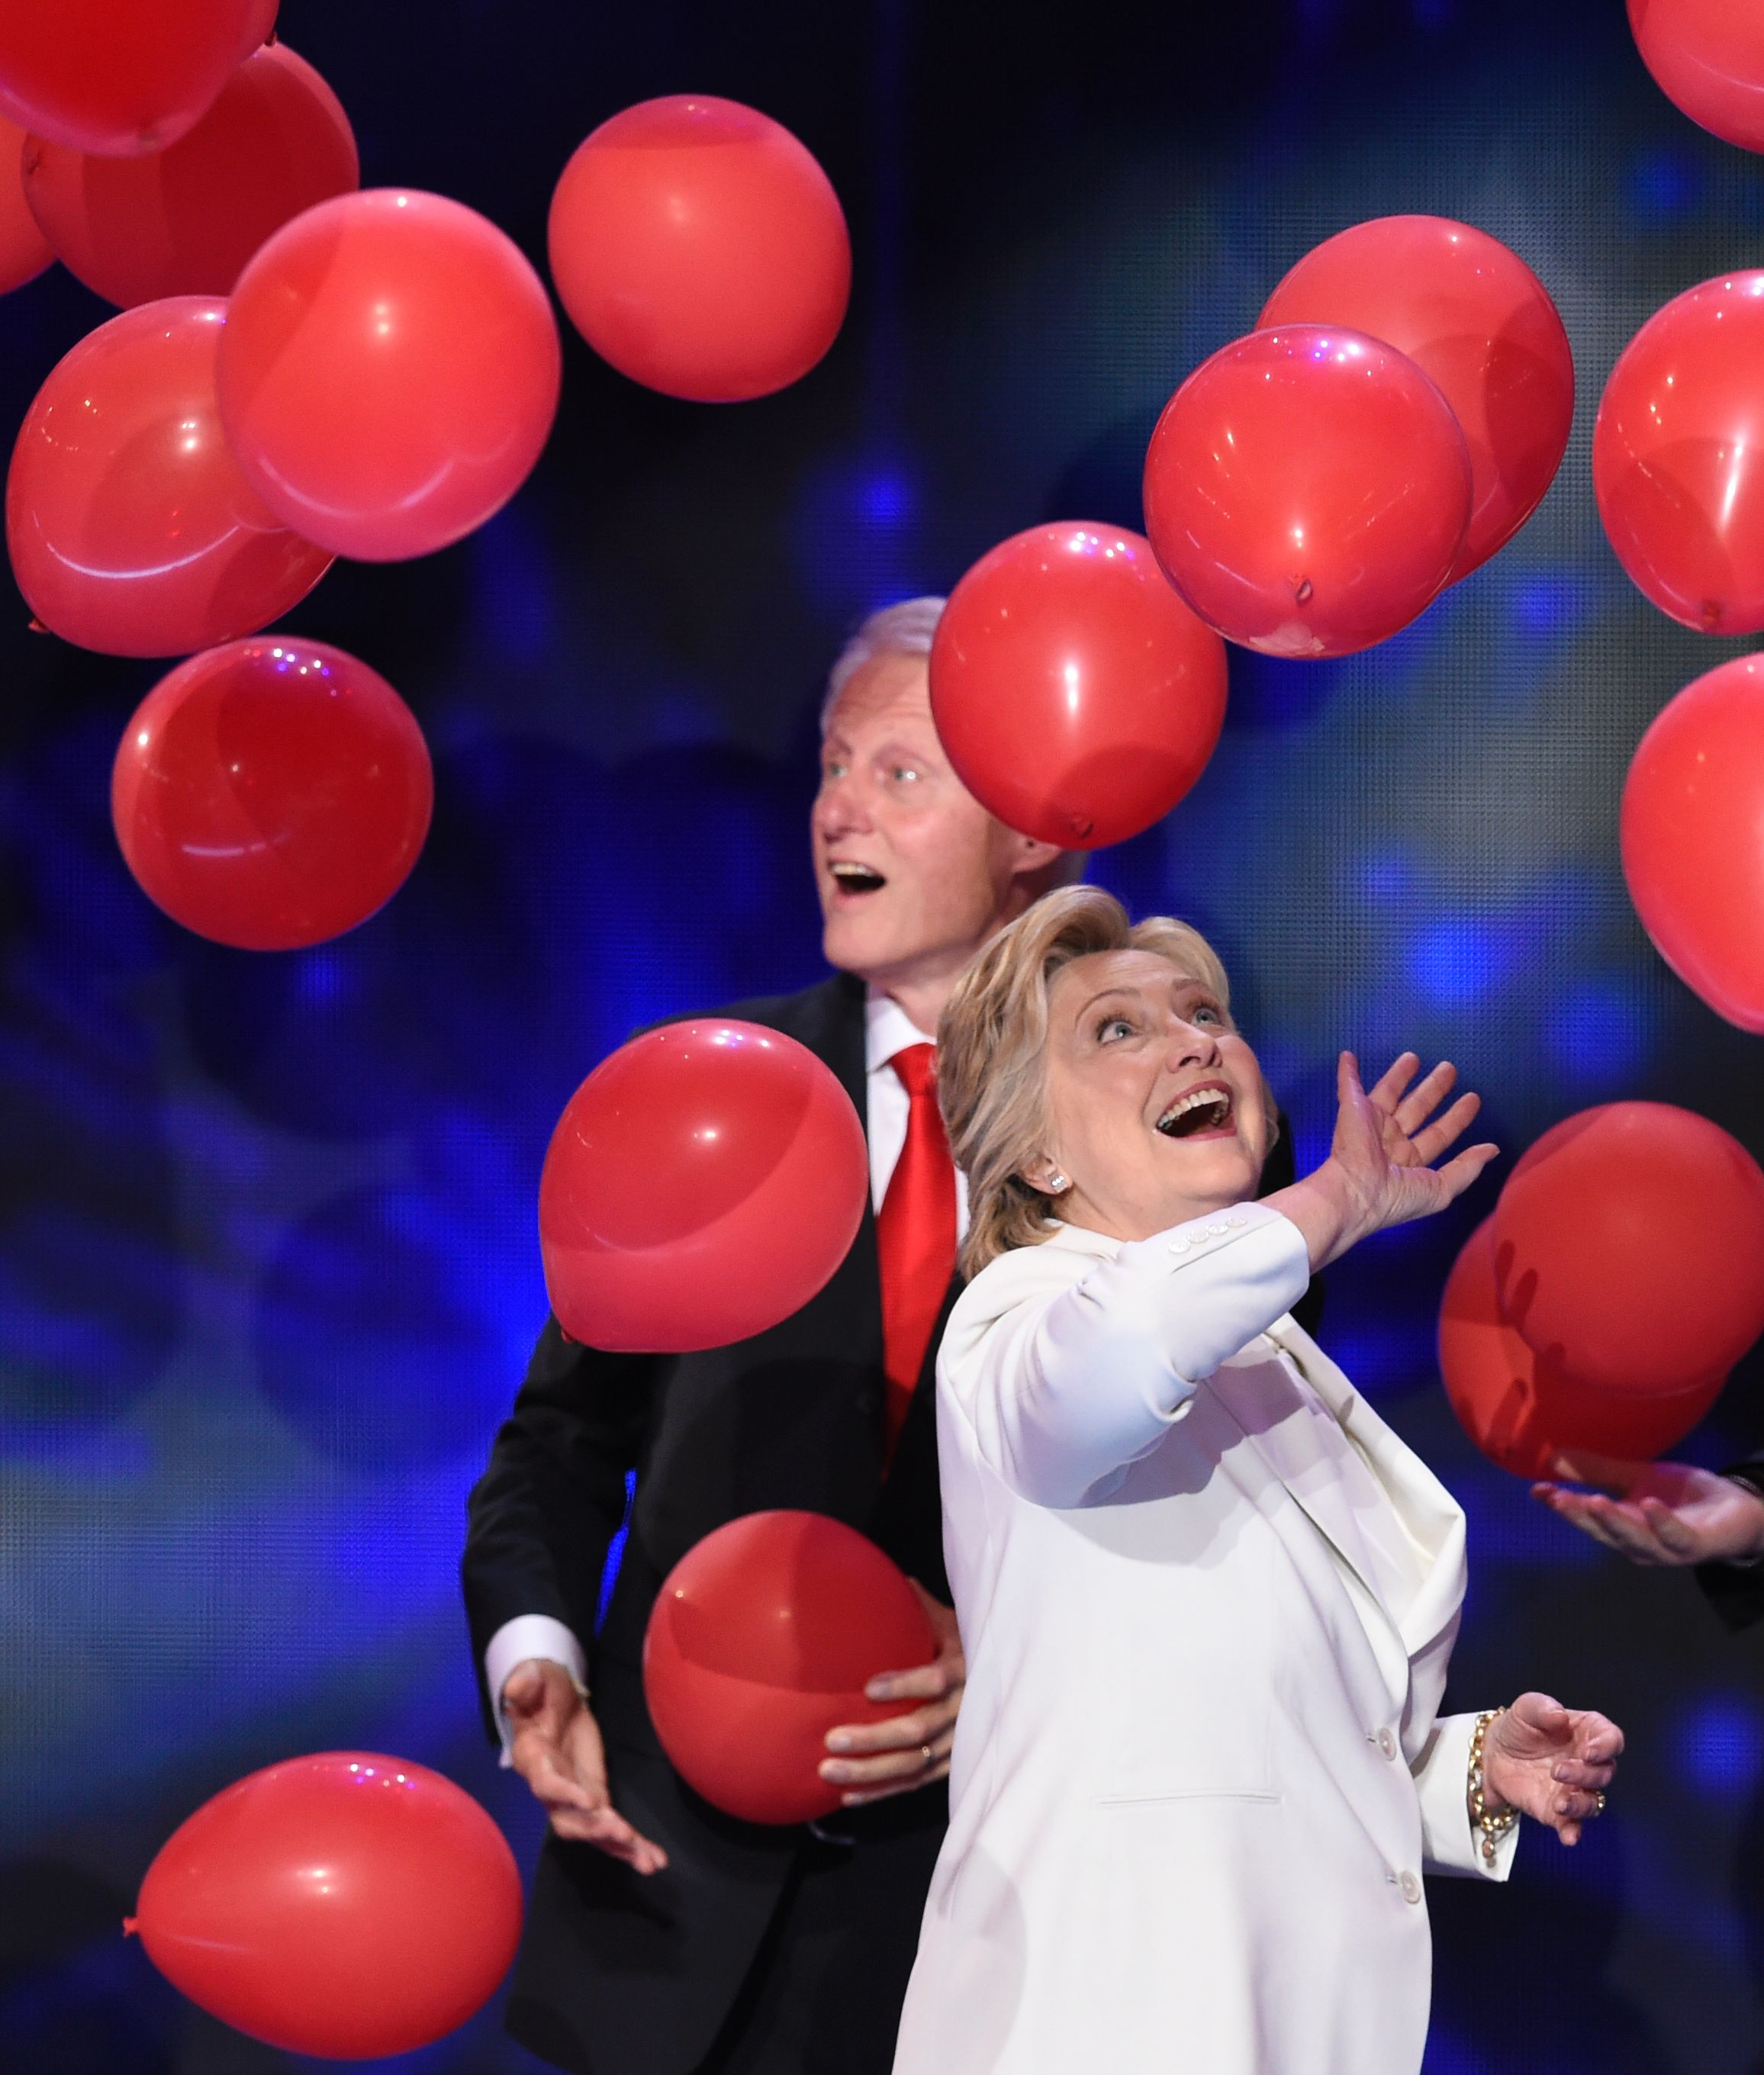 These Bill Hillary Clinton Balloon Drop Memes Gifs Will Make You